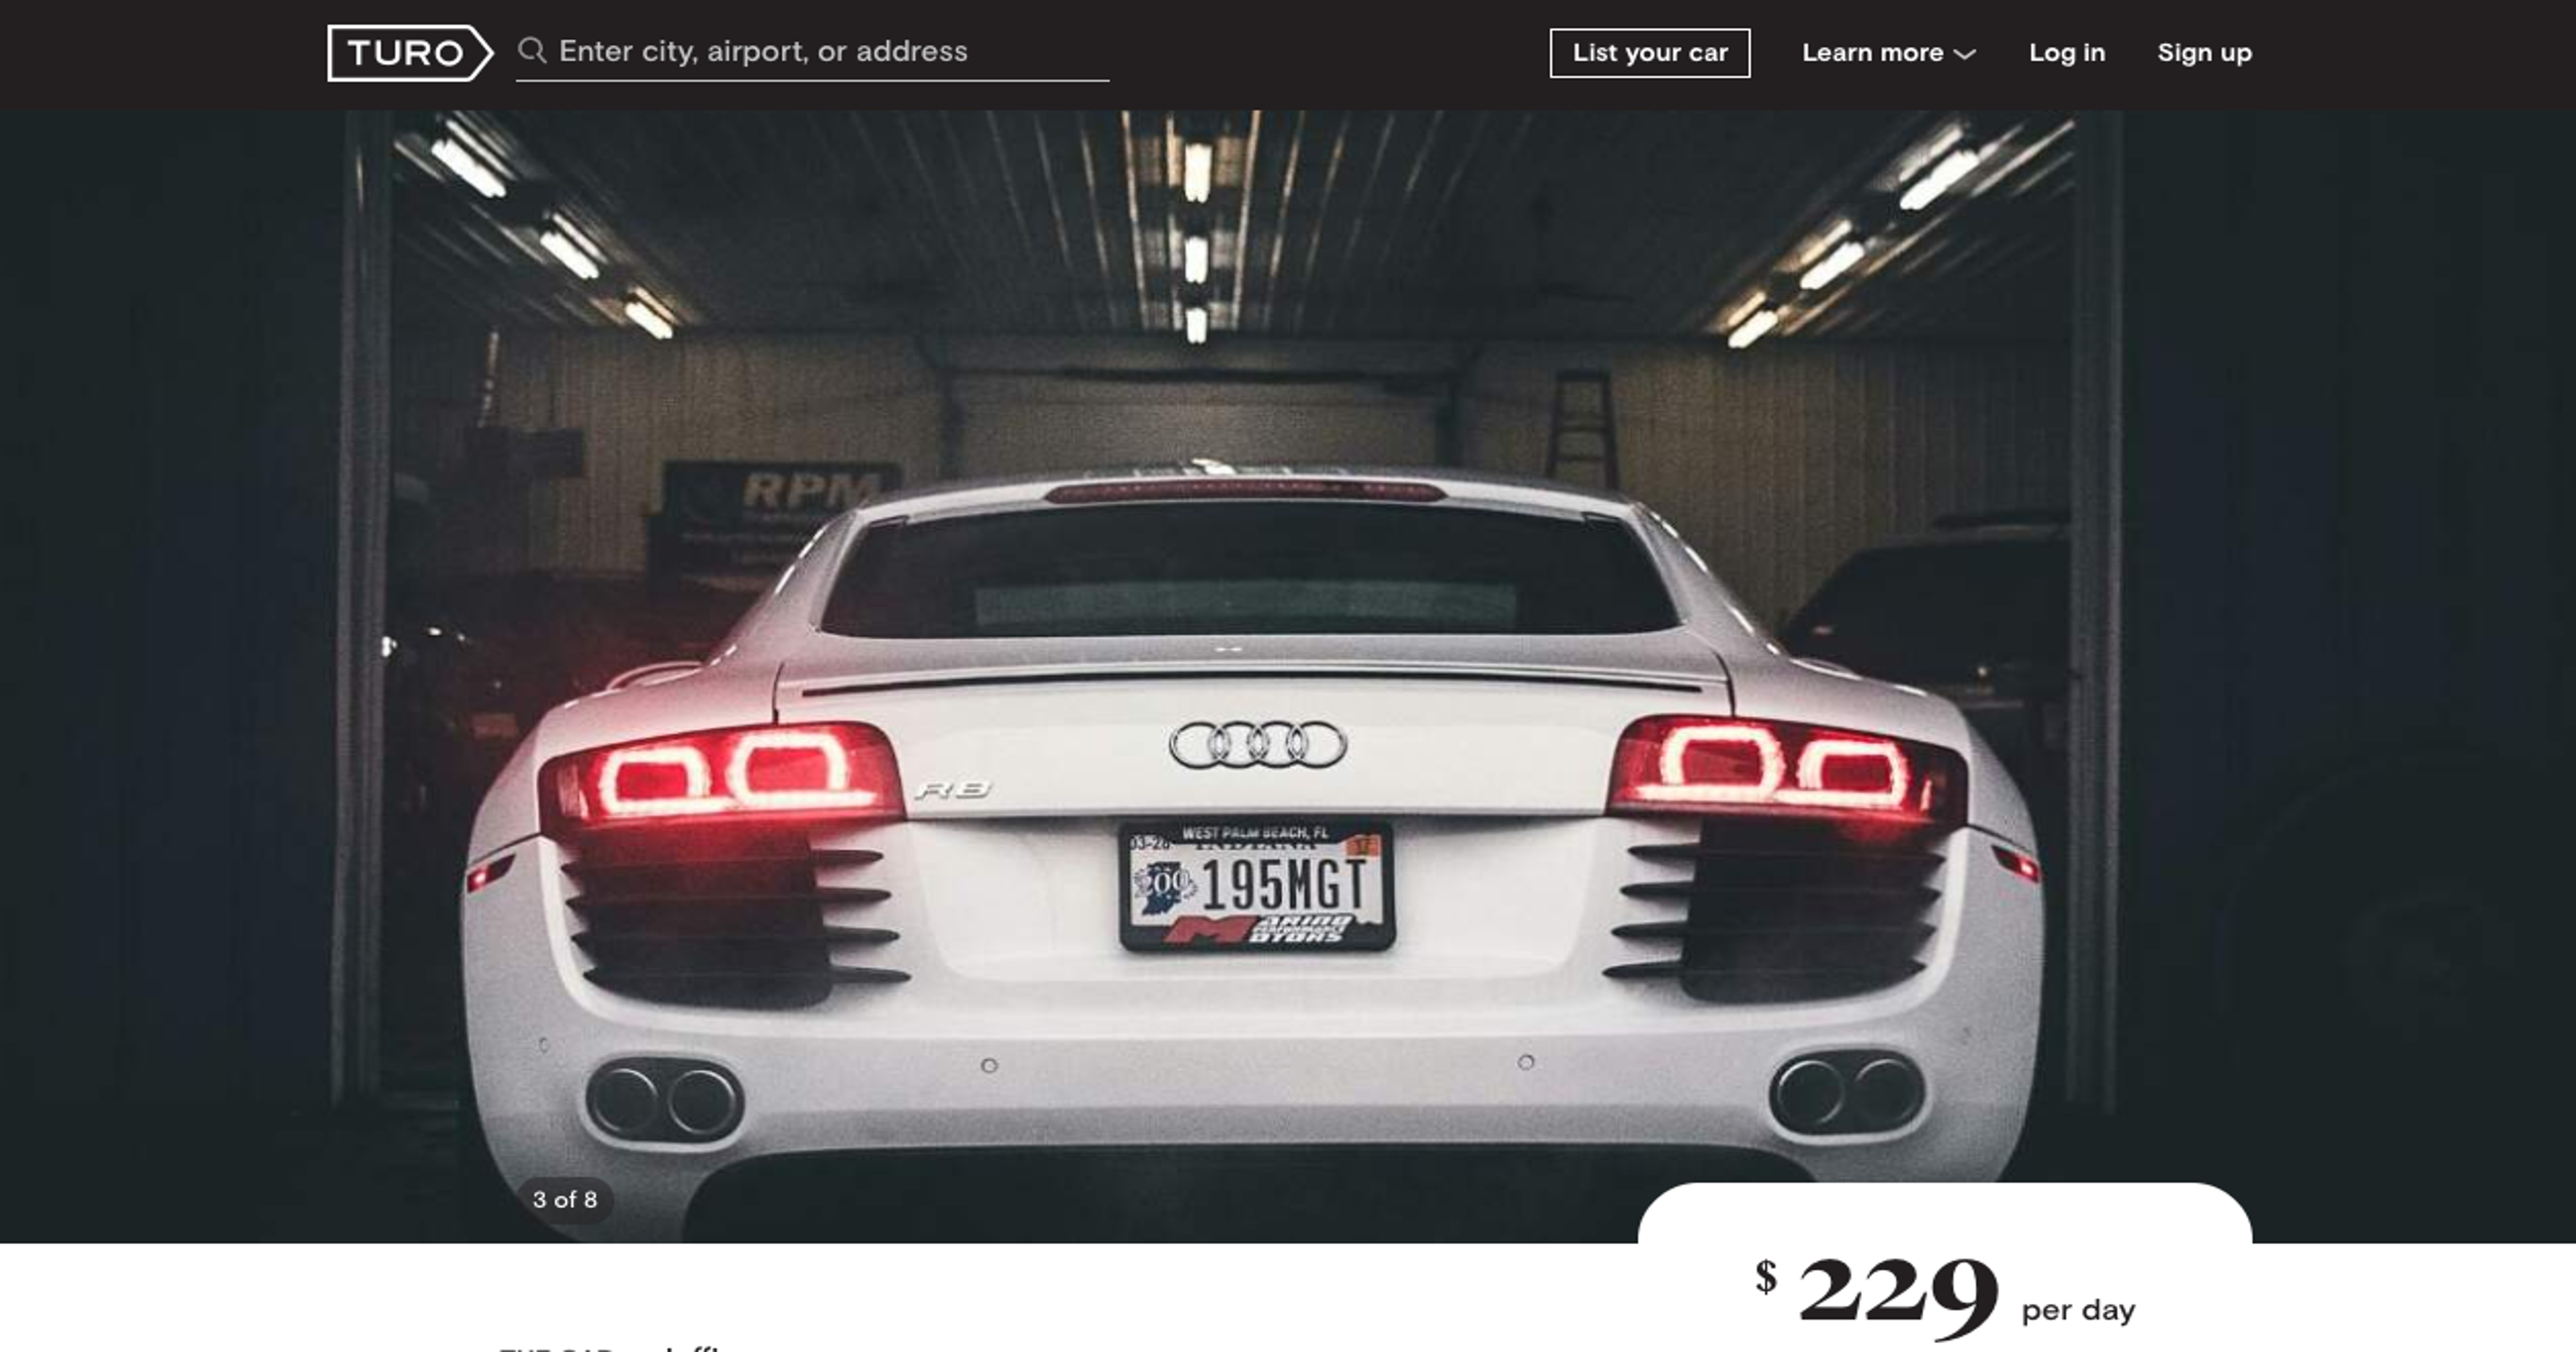 Airbnb For Cars >> Indy S Most Interesting Cars On Turo The Auto Airbnb